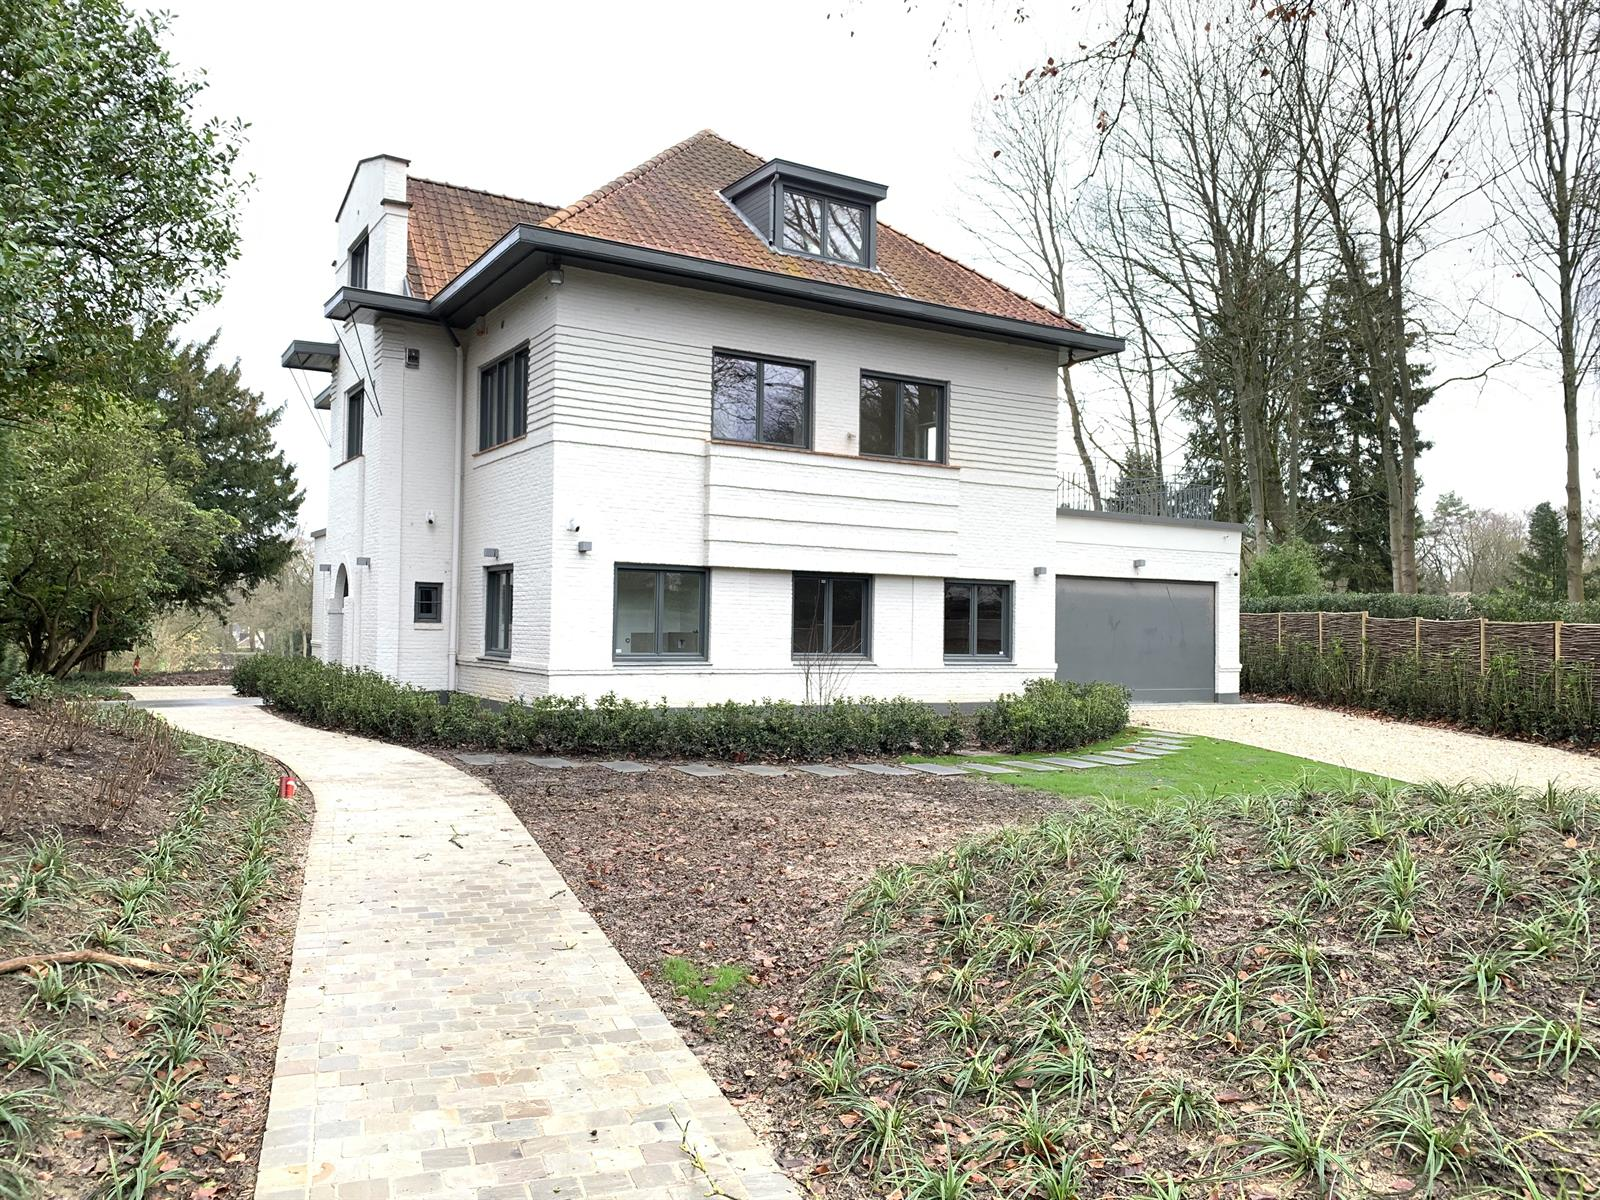 Villa - Uccle - #3965179-0